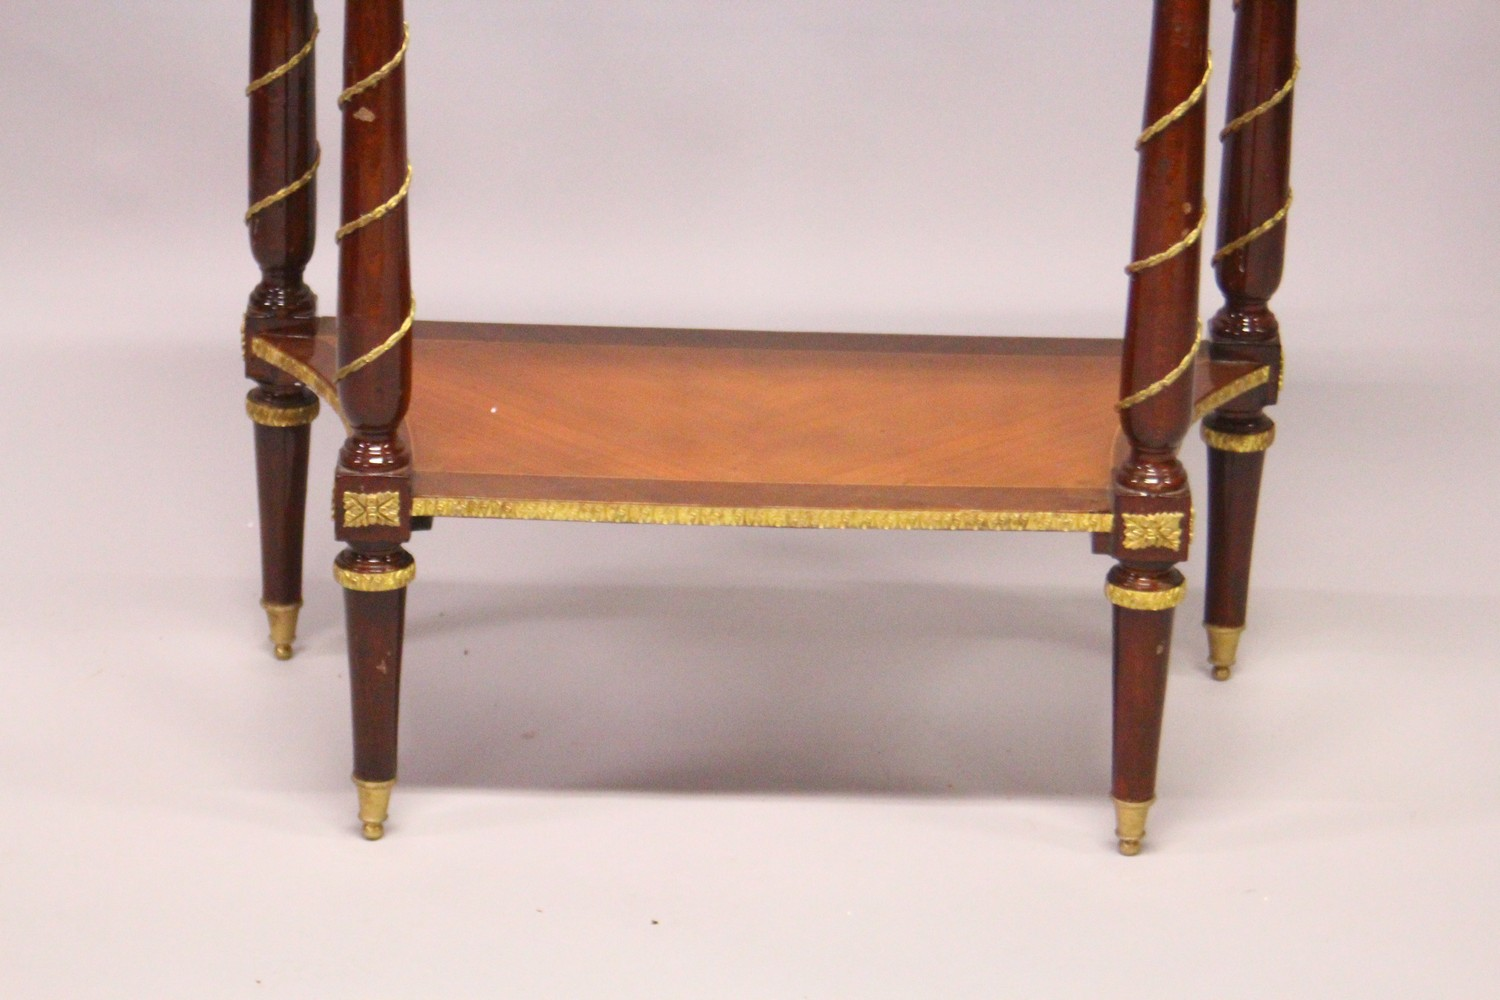 A FRENCH STYLE MAHOGANY AND ORMOLU TWO-TIER CONSOLE TABLE. 2ft 4ins wide x 2ft 9ins high x 1ft - Image 3 of 3